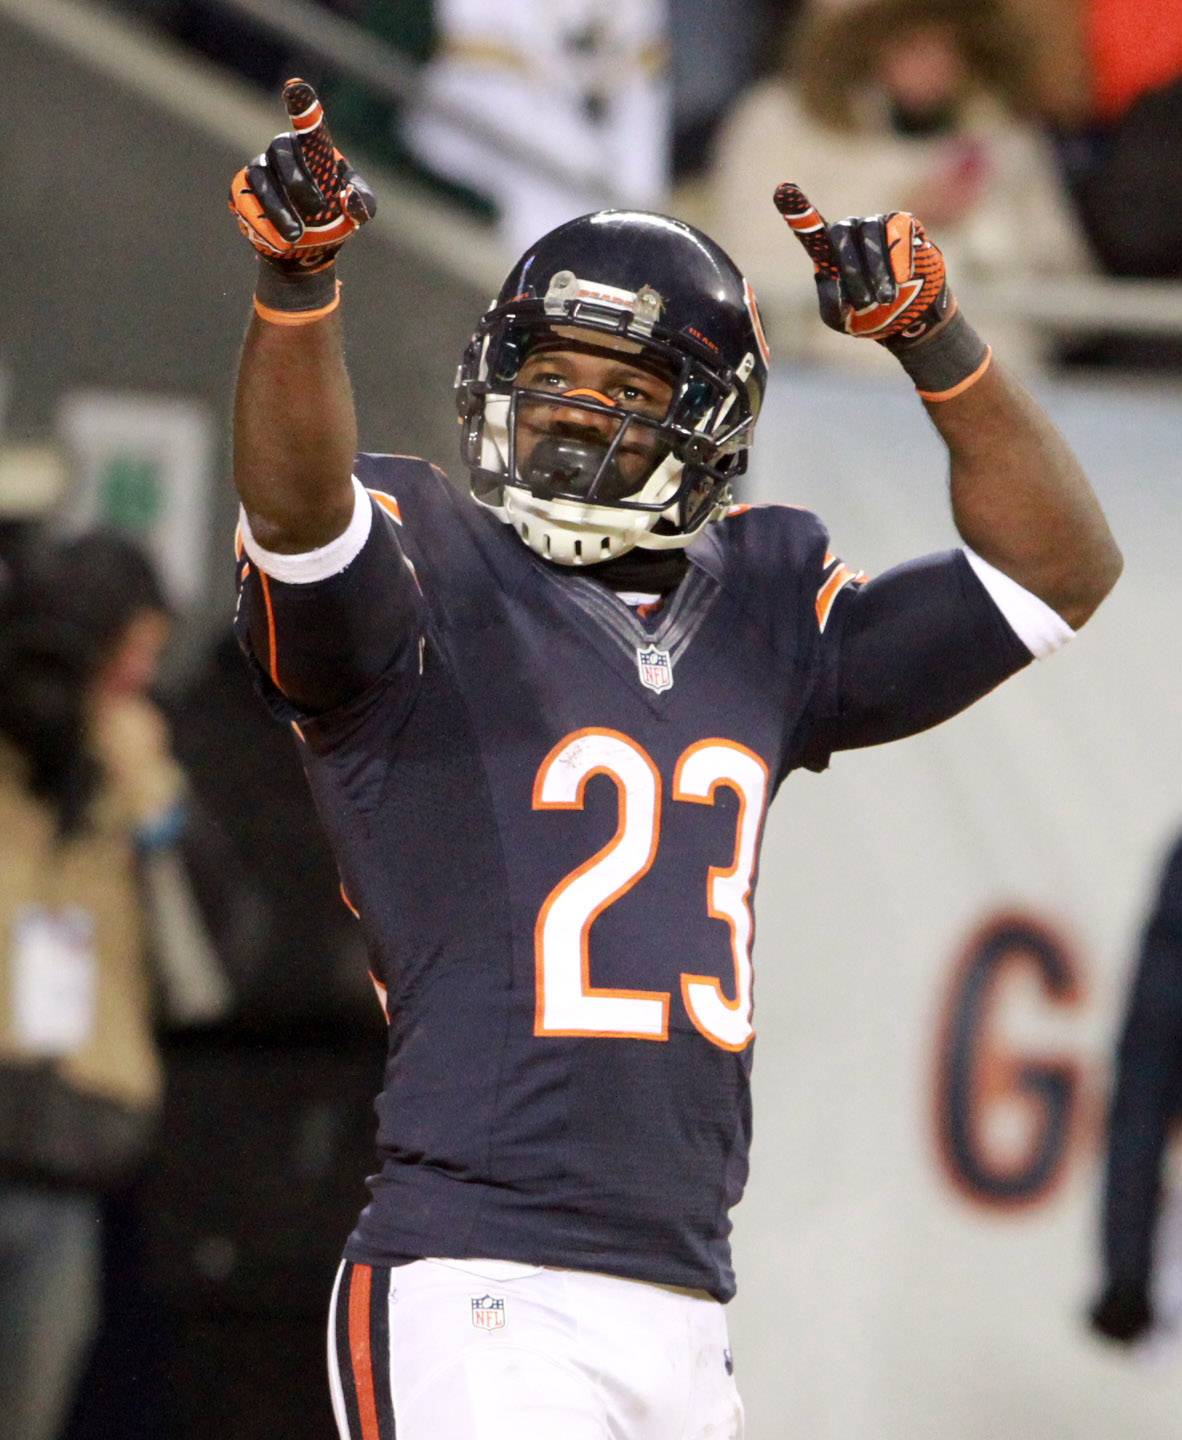 Former Bears kick returner Devin Hester reportedly is asking NFL teams to pay him $4 million for his services.